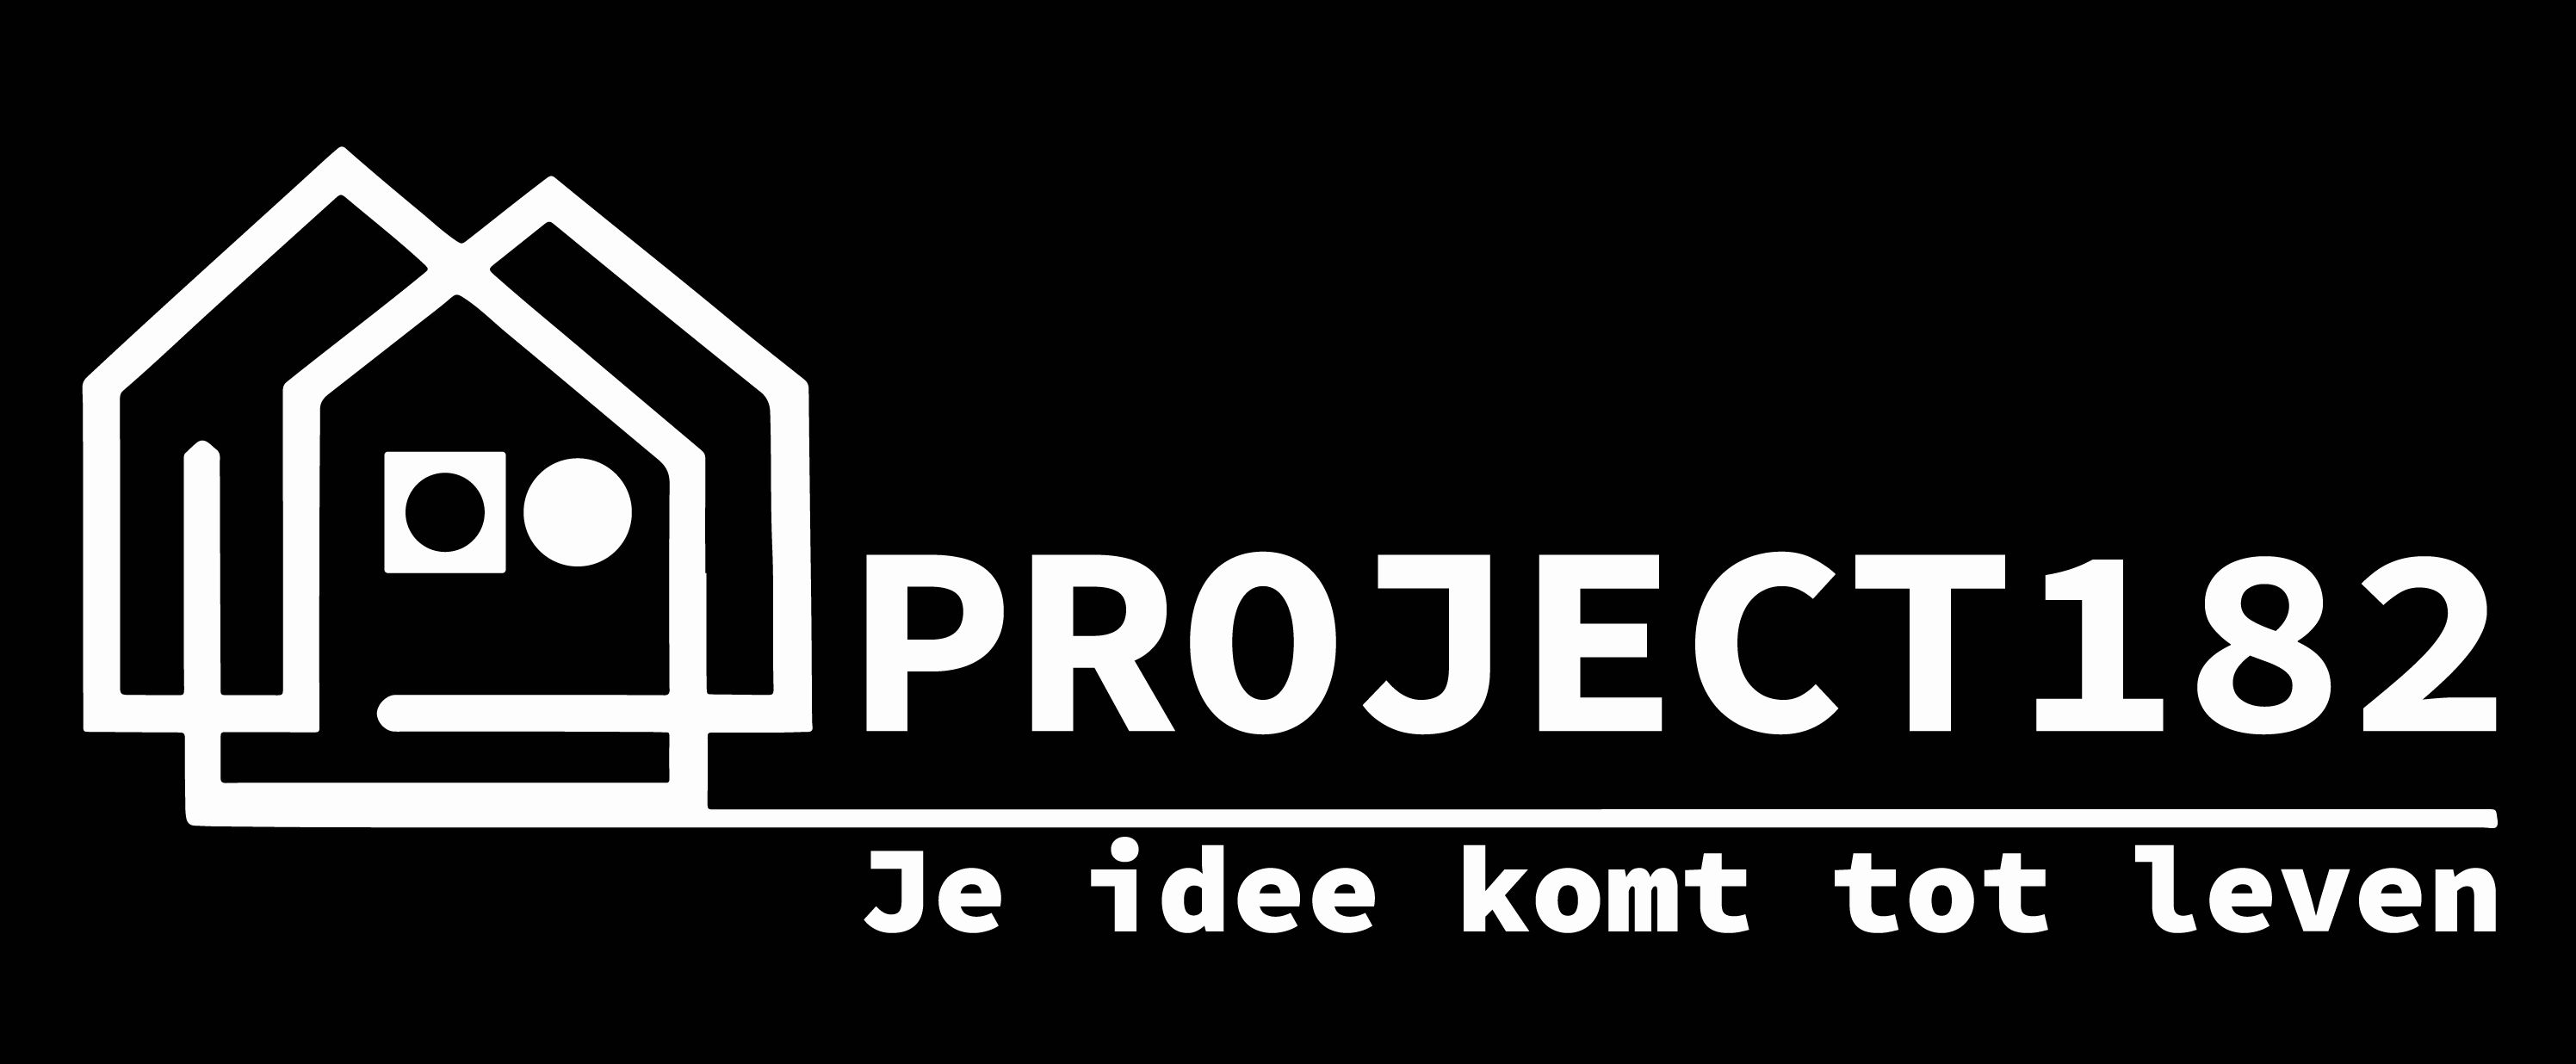 Naamswijziging PROJECT182